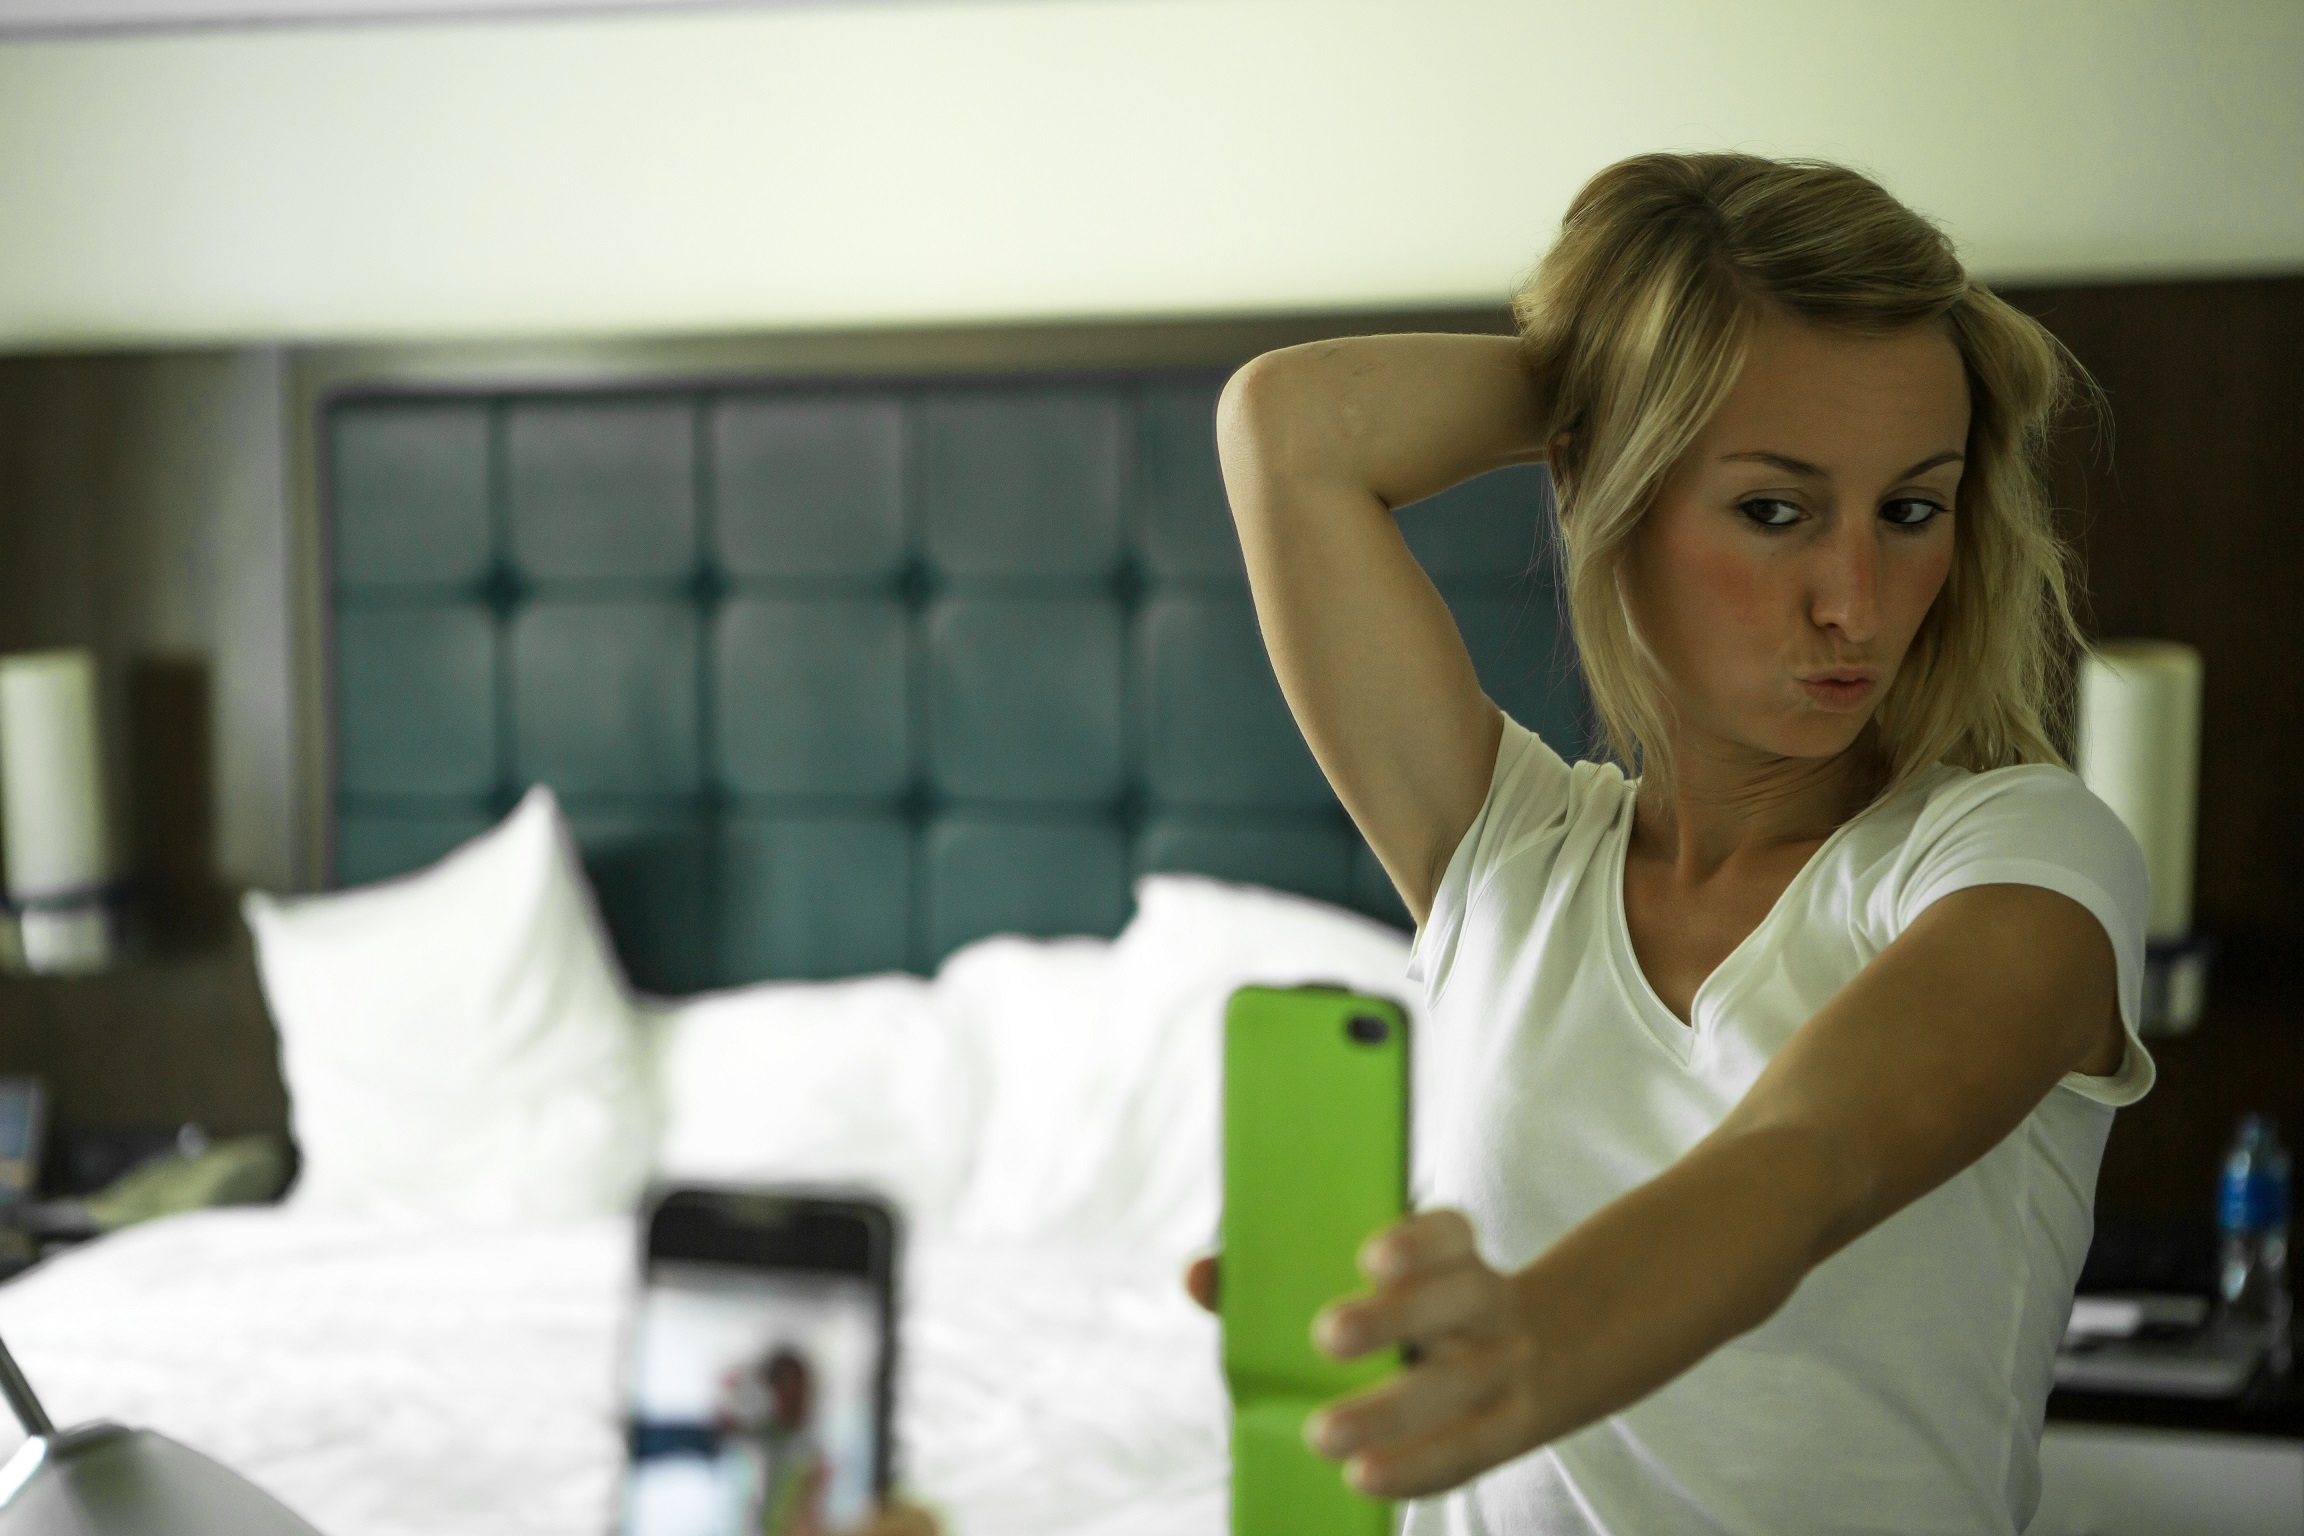 Young woman in an hotel room taking a selfie in the morning, sunlight coming in the room. She is taking a self portrait from the reflection in the mirror using her mobile phone.